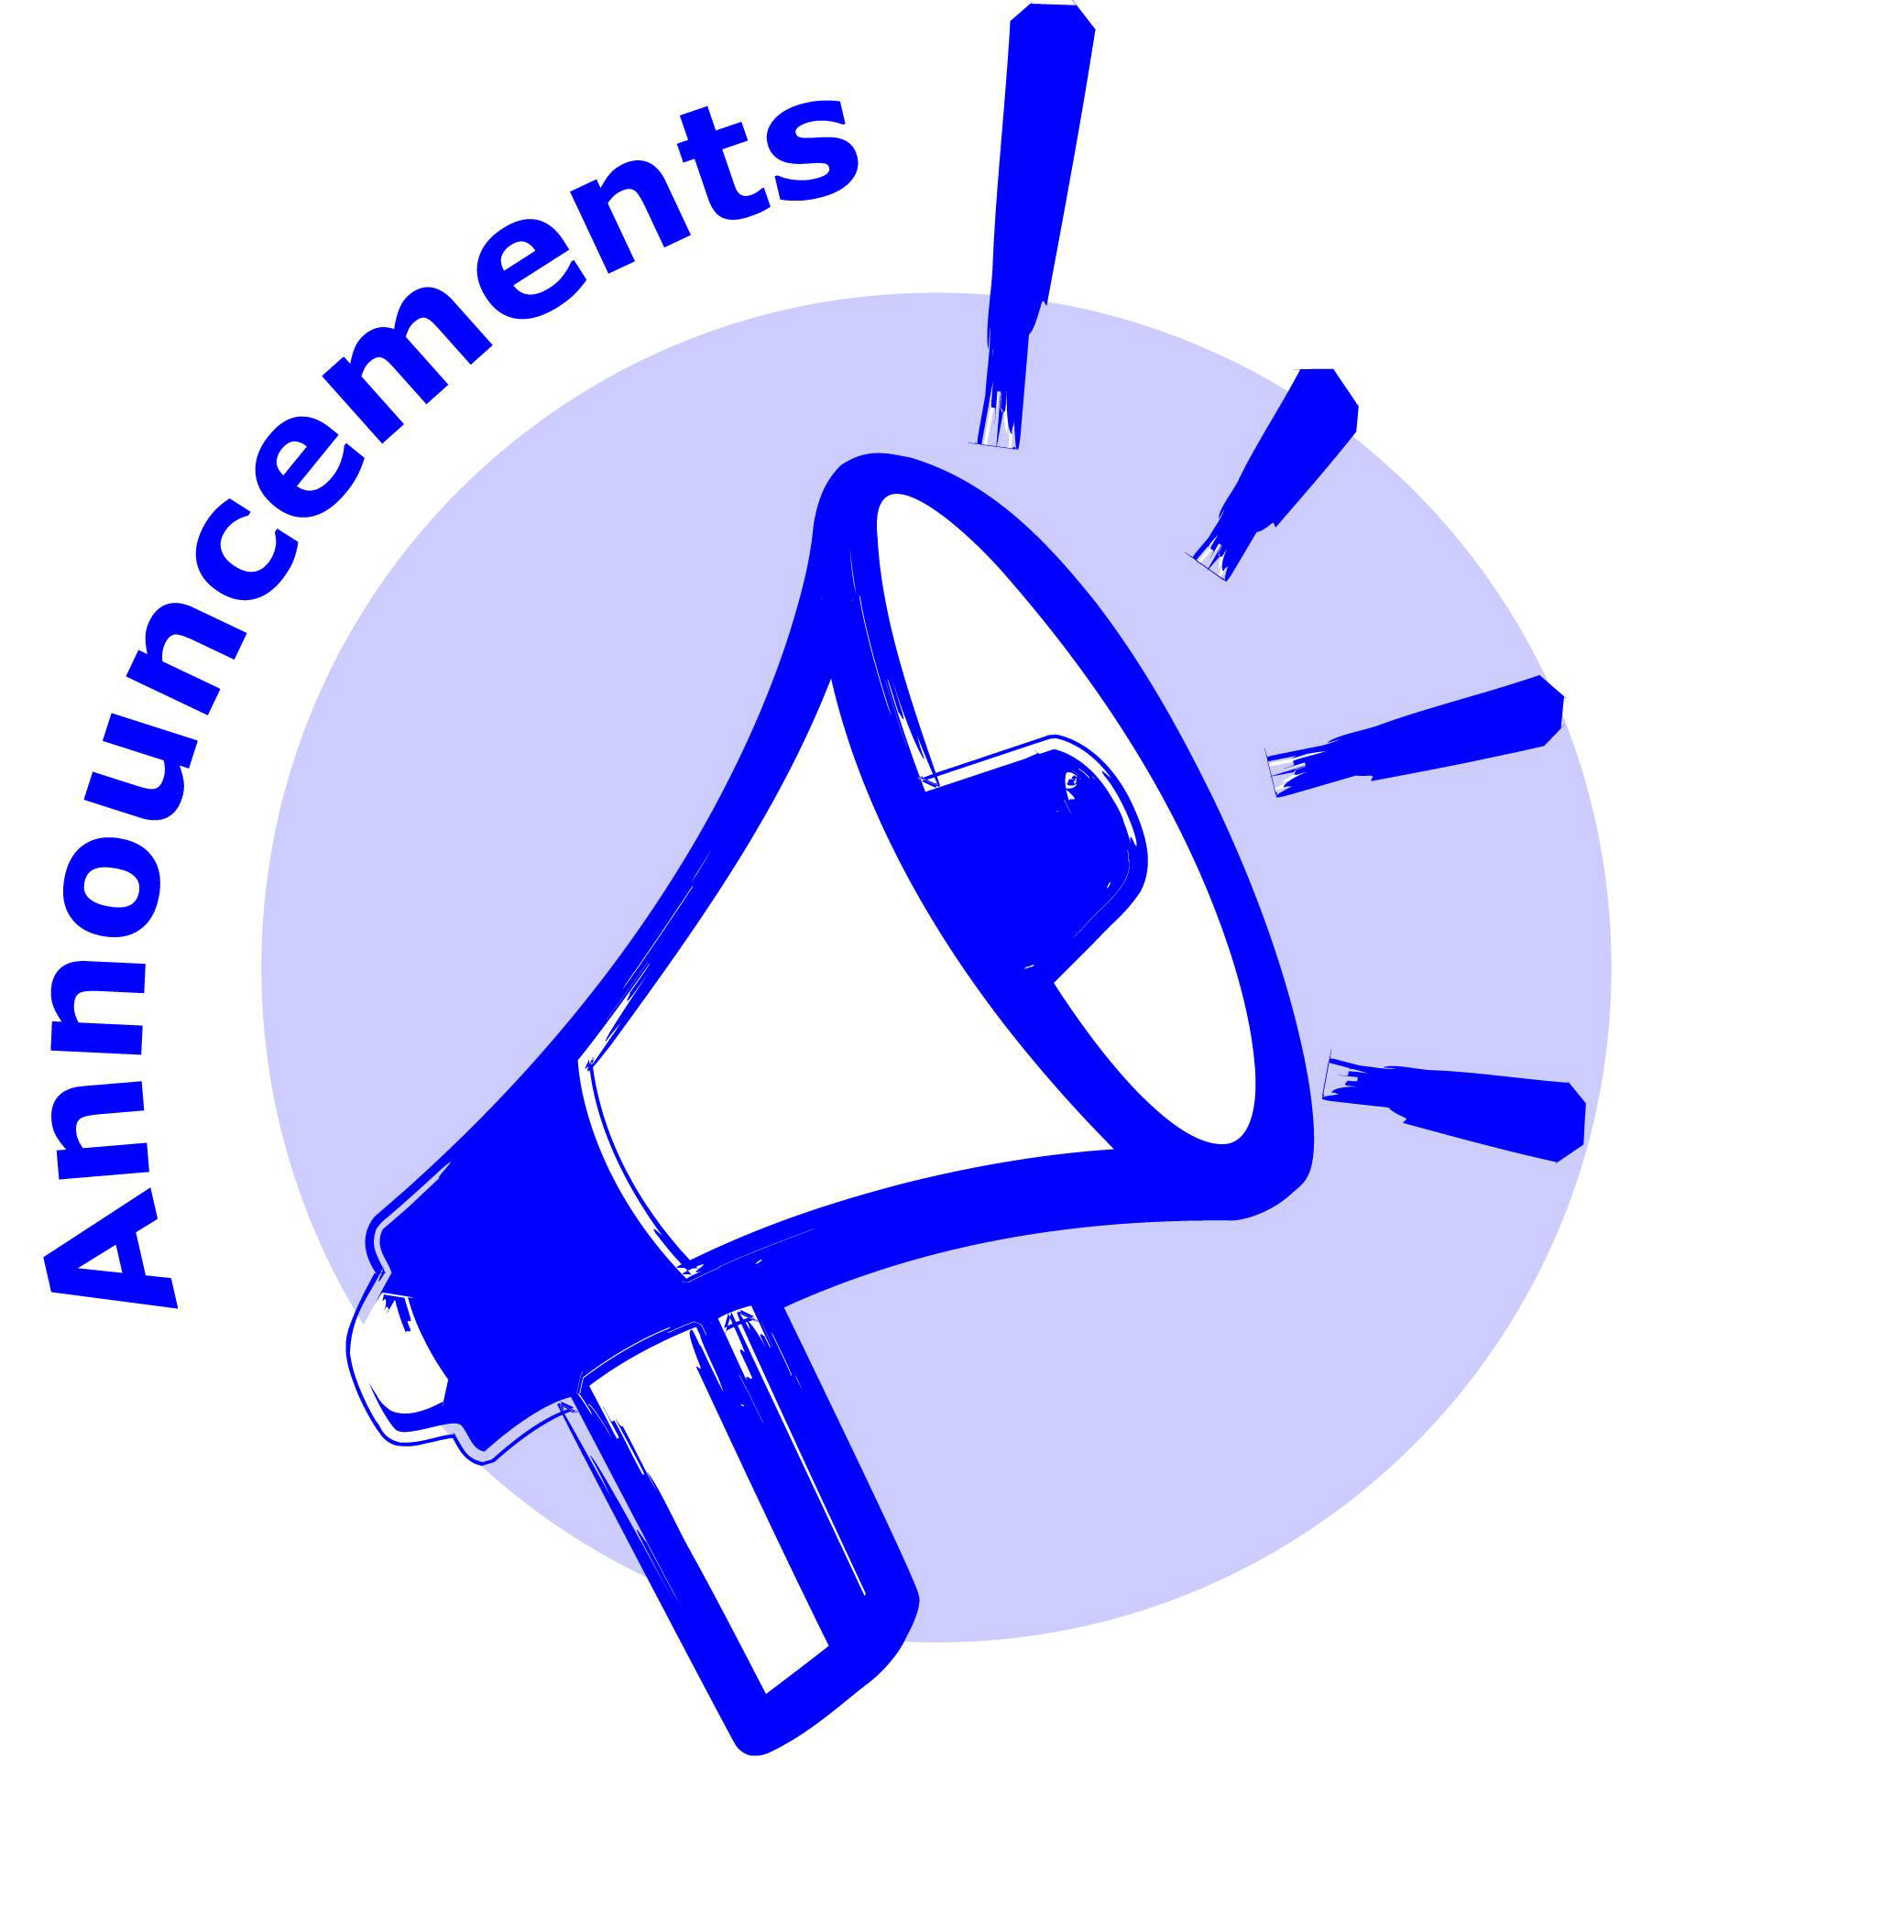 Image Of Announcement Clipart 0 Announce-Image of announcement clipart 0 announcements clipart 2 image-16